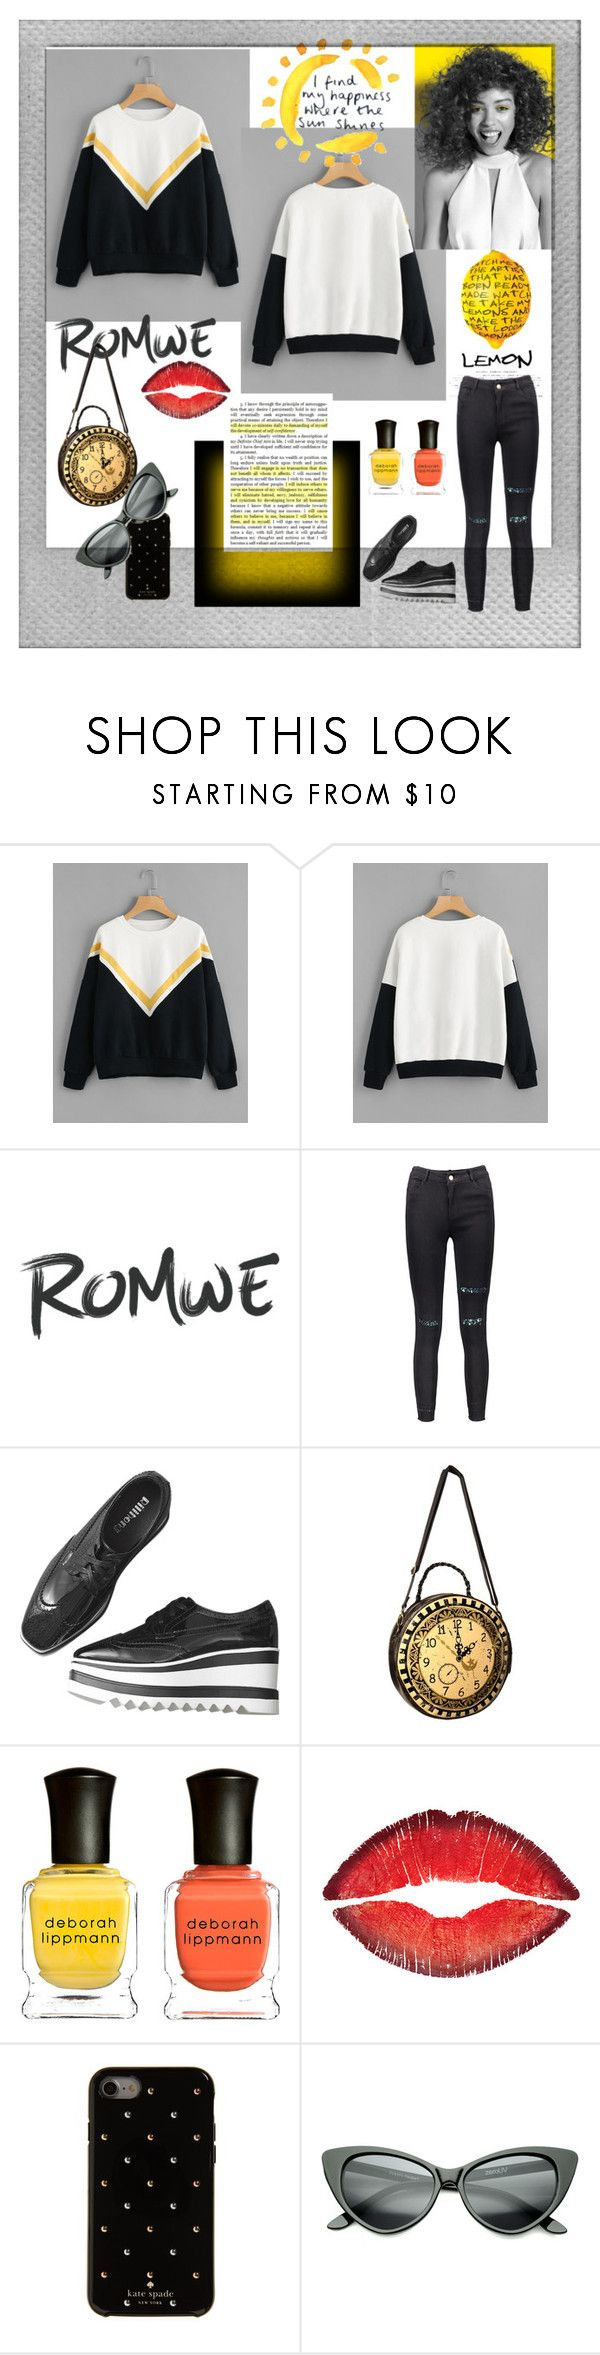 """""""ROMWE"""" by explorer-14673103603 on Polyvore featuring Paul Mitchell, Deborah Lippmann, Givenchy, Kate Spade and Polaroid"""